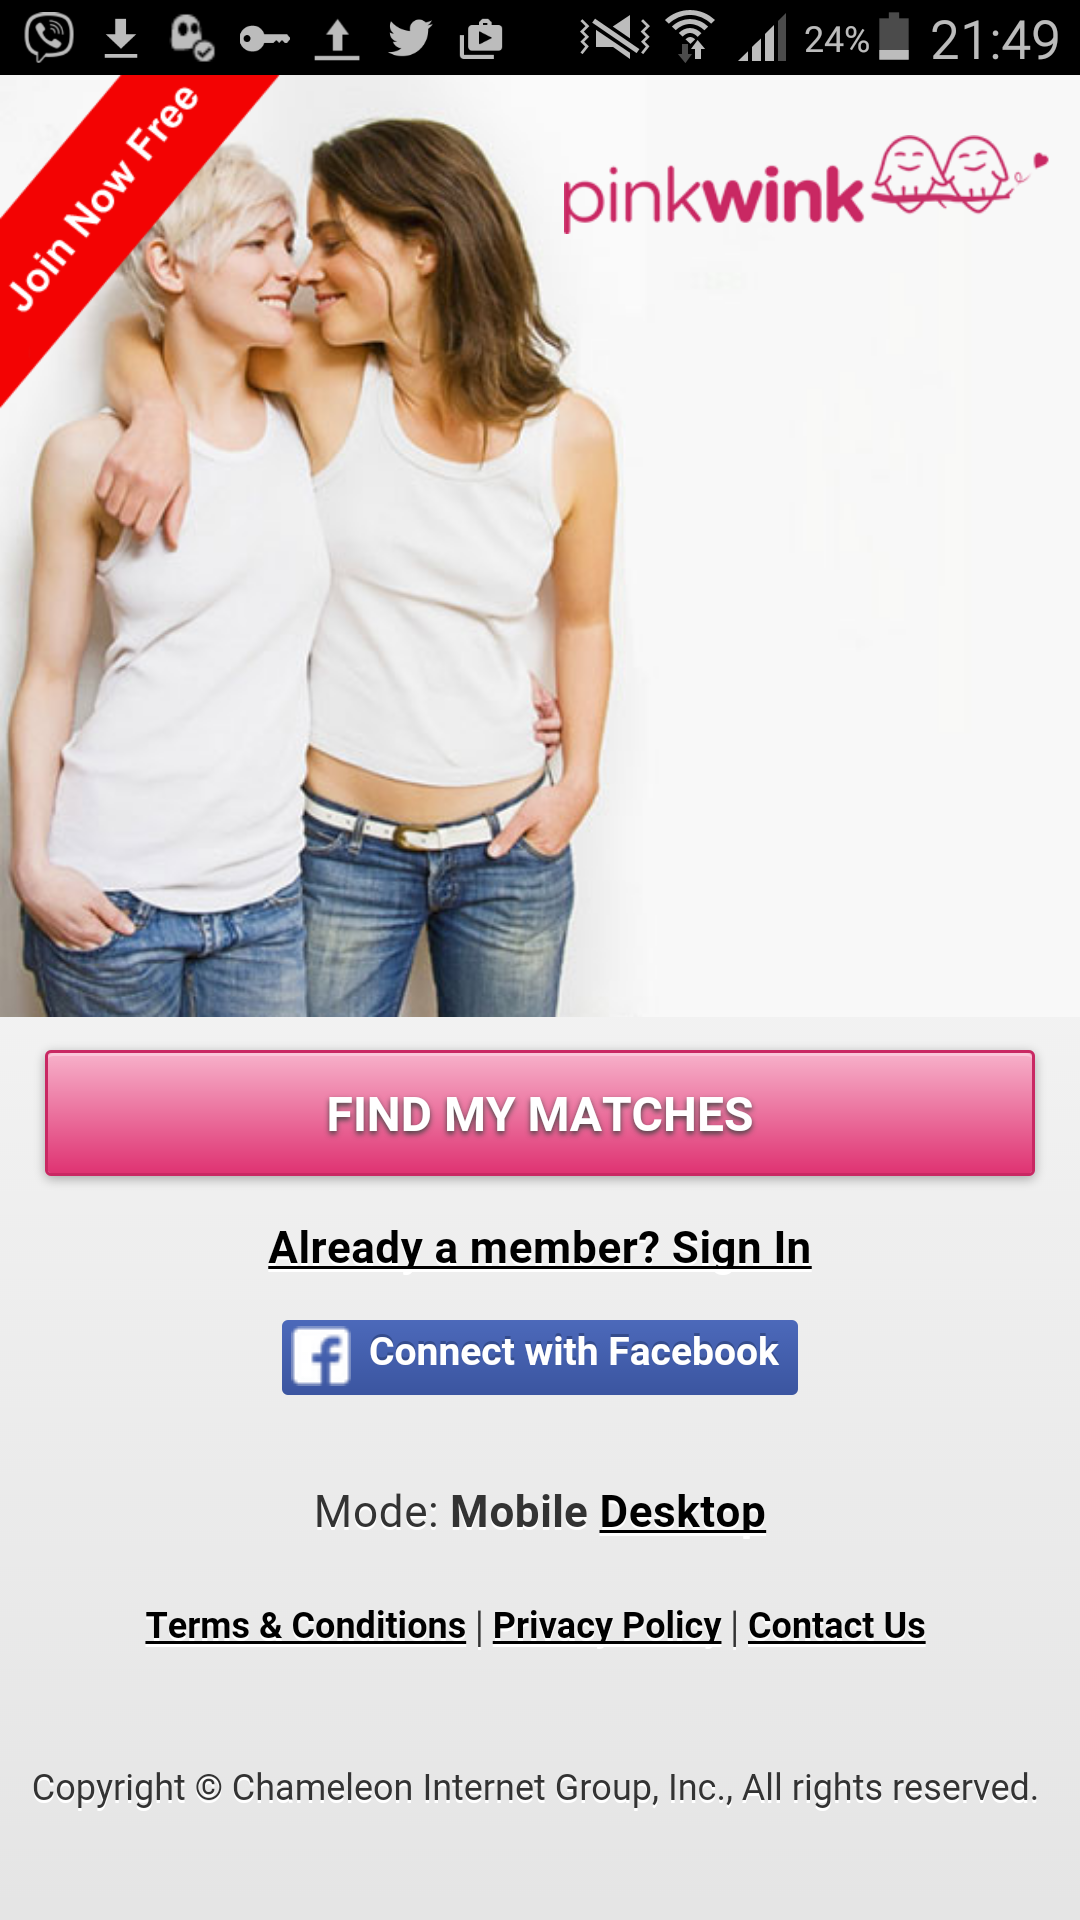 helenville lesbian singles Looking for women seeking women and lasting love connect with lesbian  singles dating and looking for lasting love on our site find out more here.